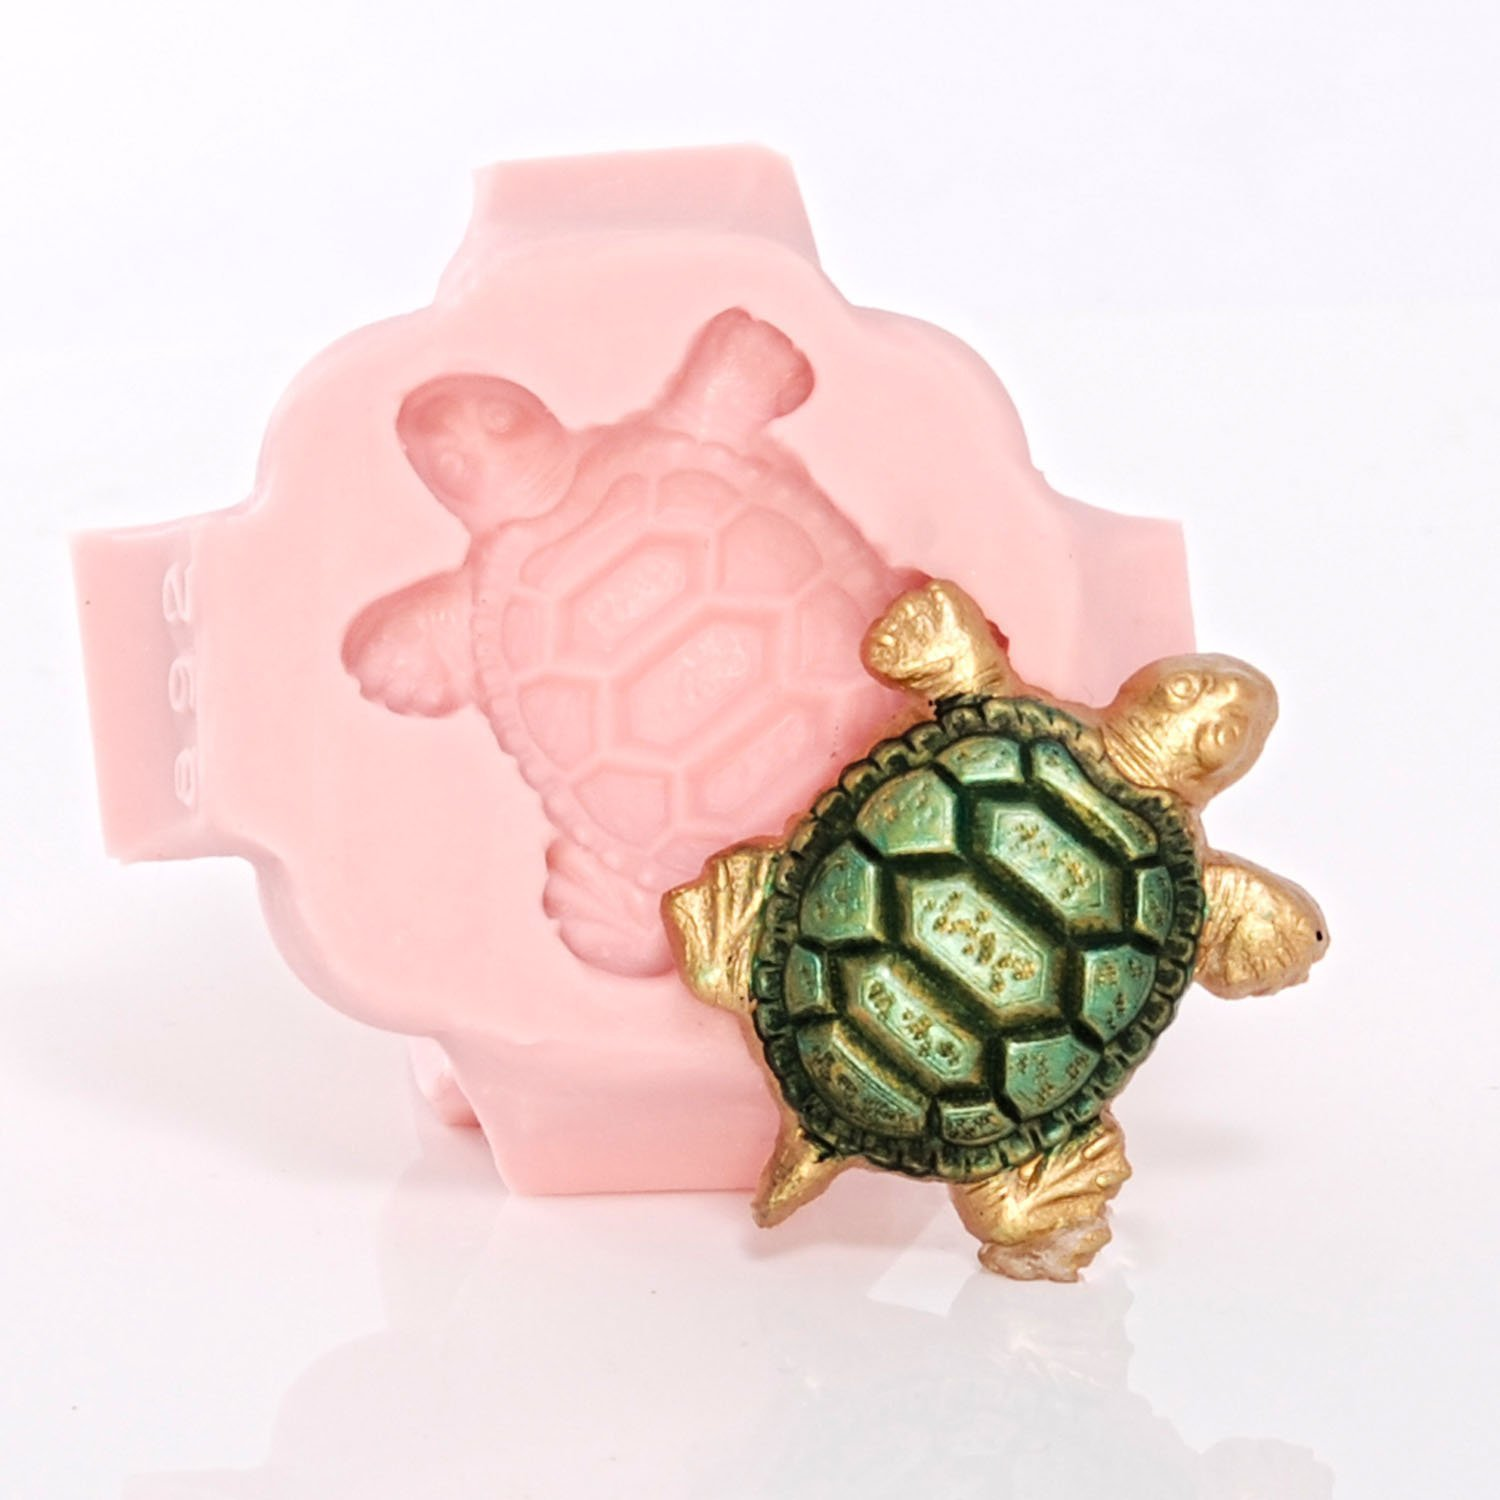 Sea Turtle Silicone Mold Food Safe Candy Chocolate Fondant Mold Craft Jewelry Resin Polymer Clay Mold